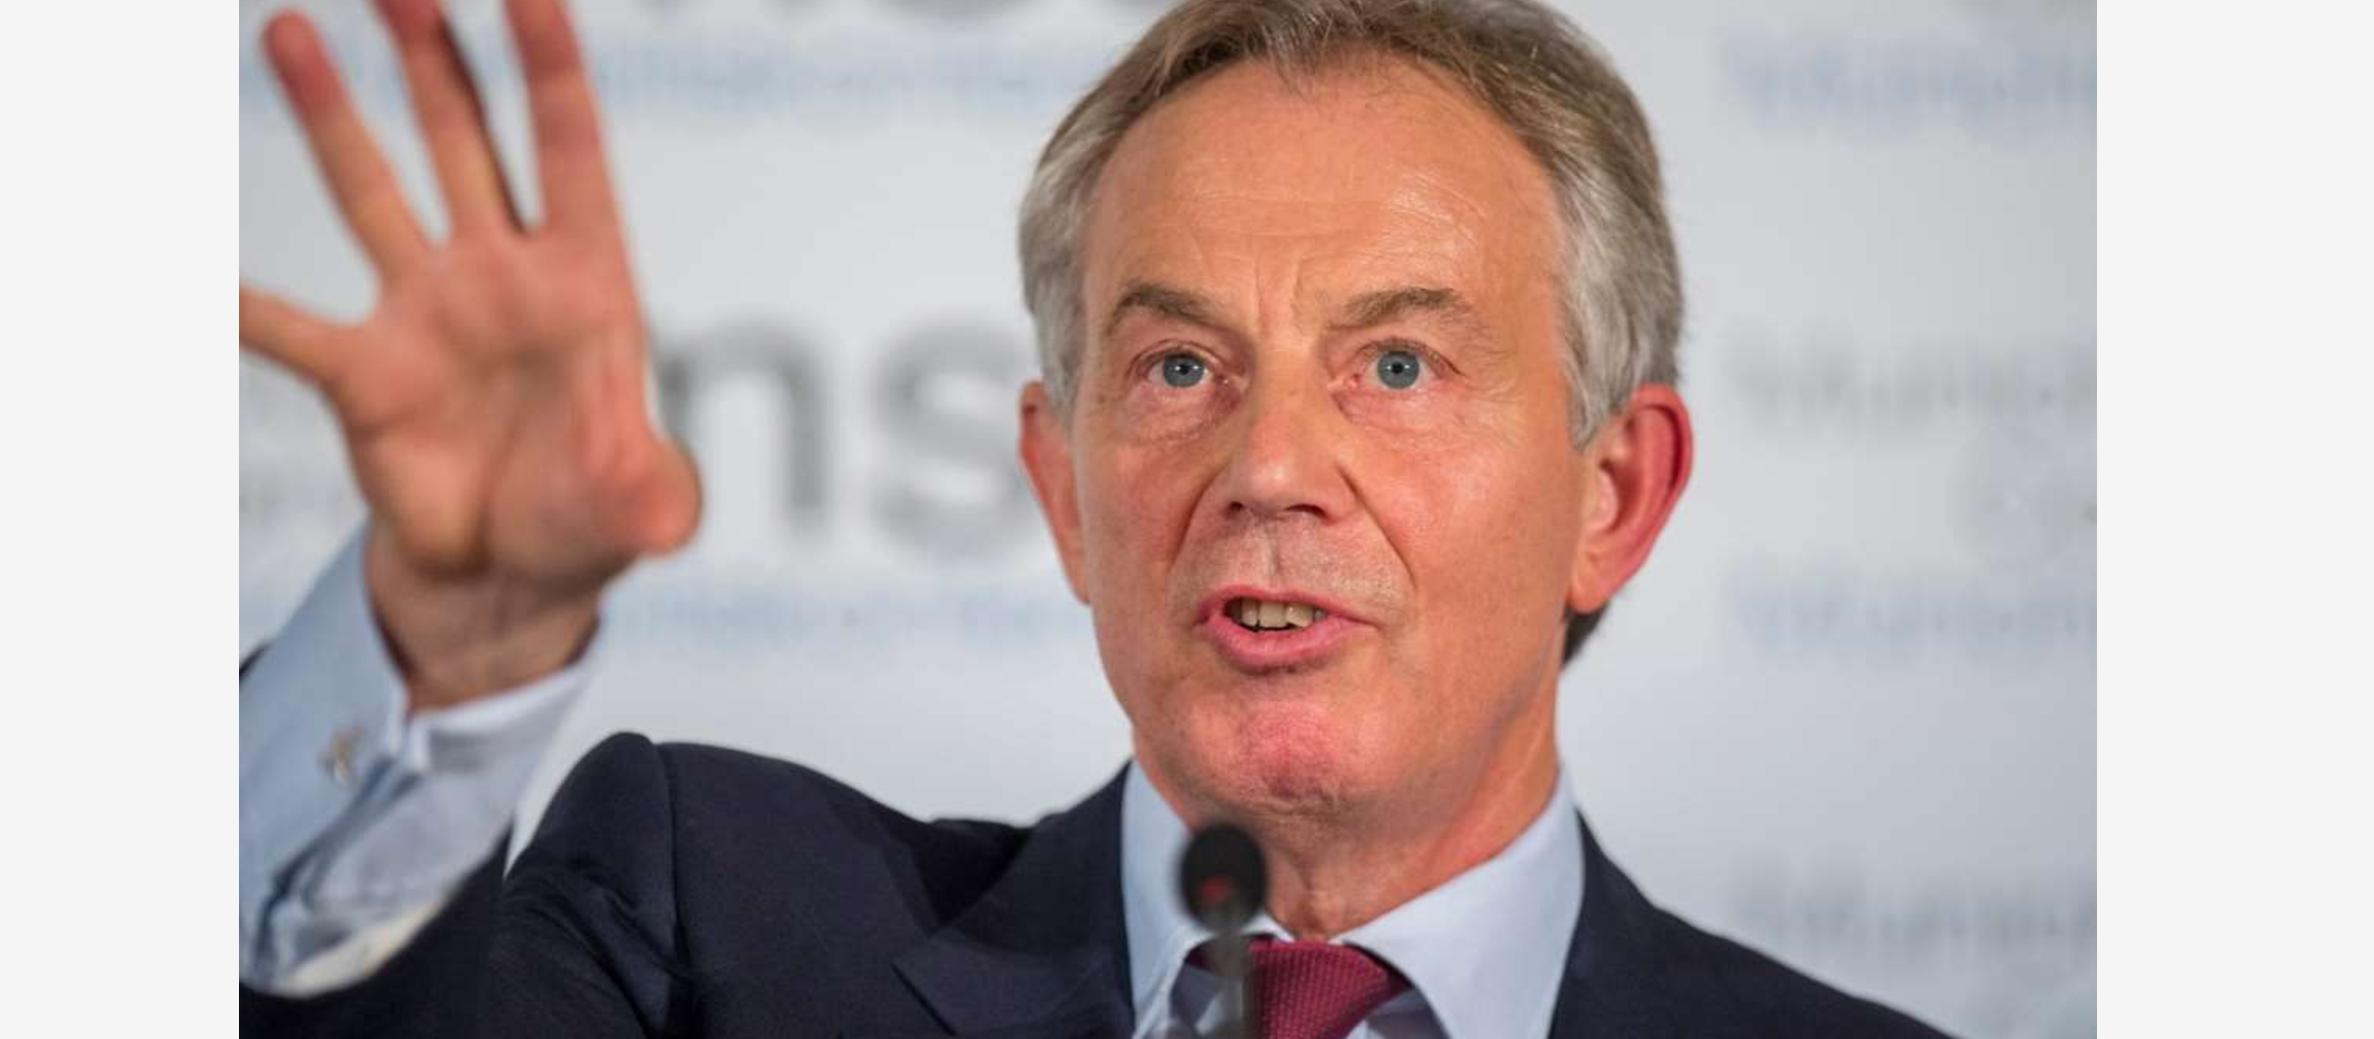 Tony Blair to take on new role in combating anti-Semitism